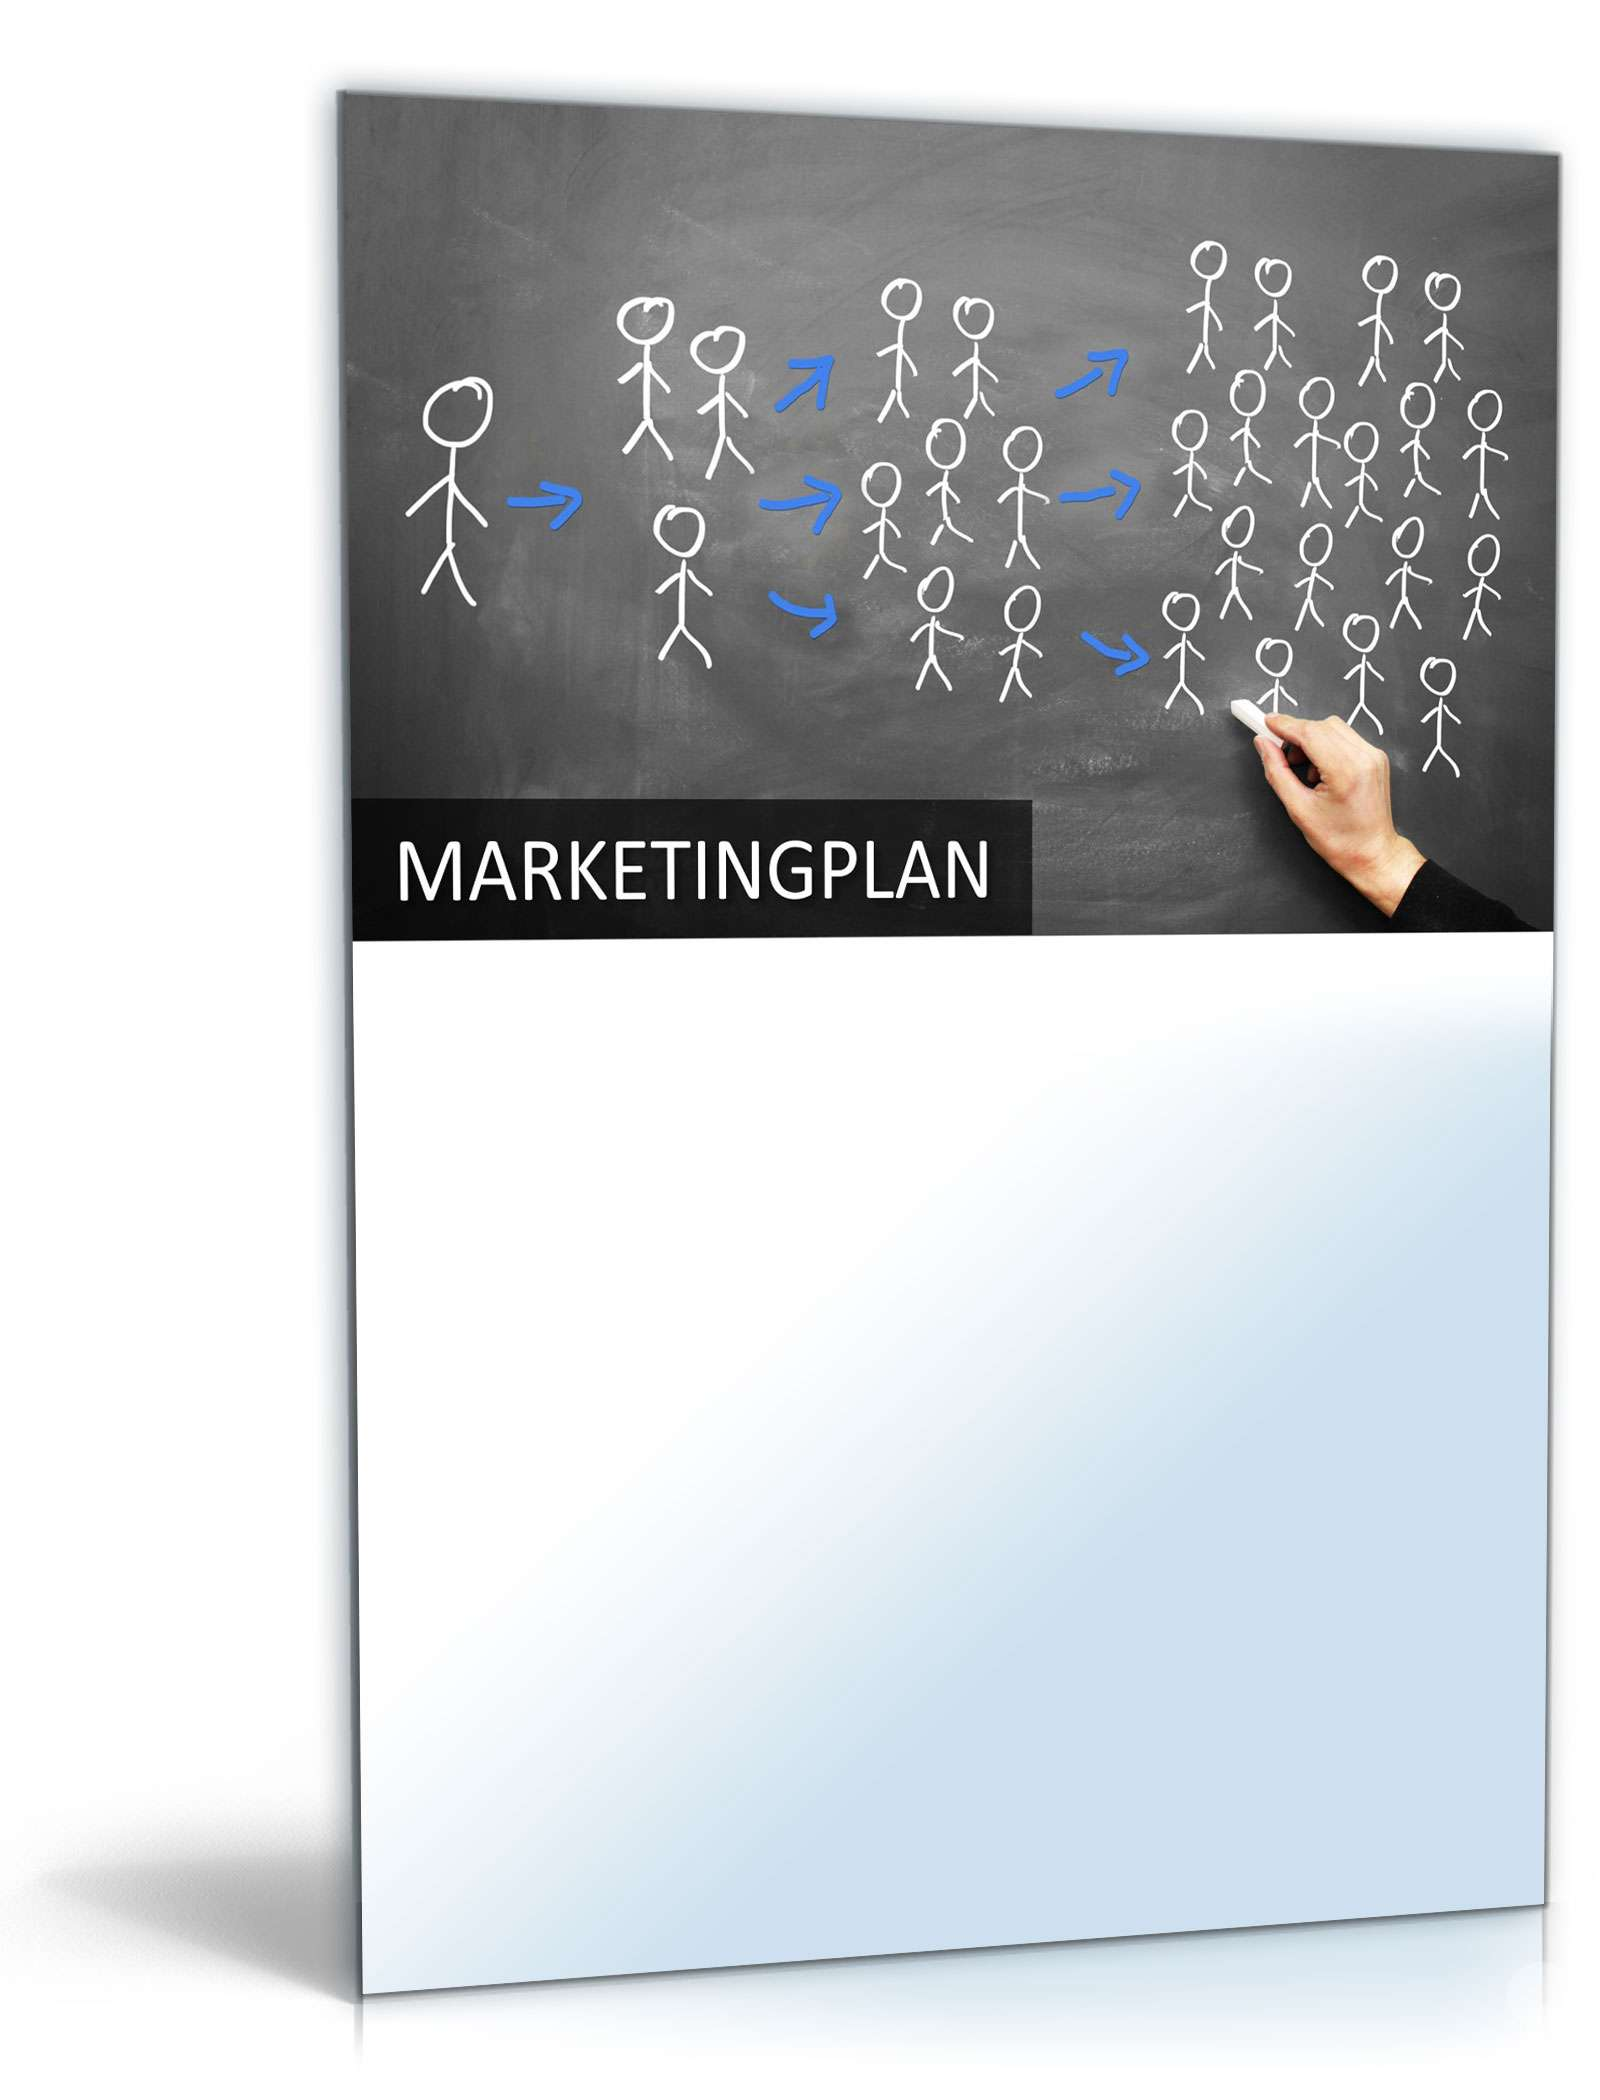 PowerPoint Präsentation Marketing-Plan: Vorlage zum Download